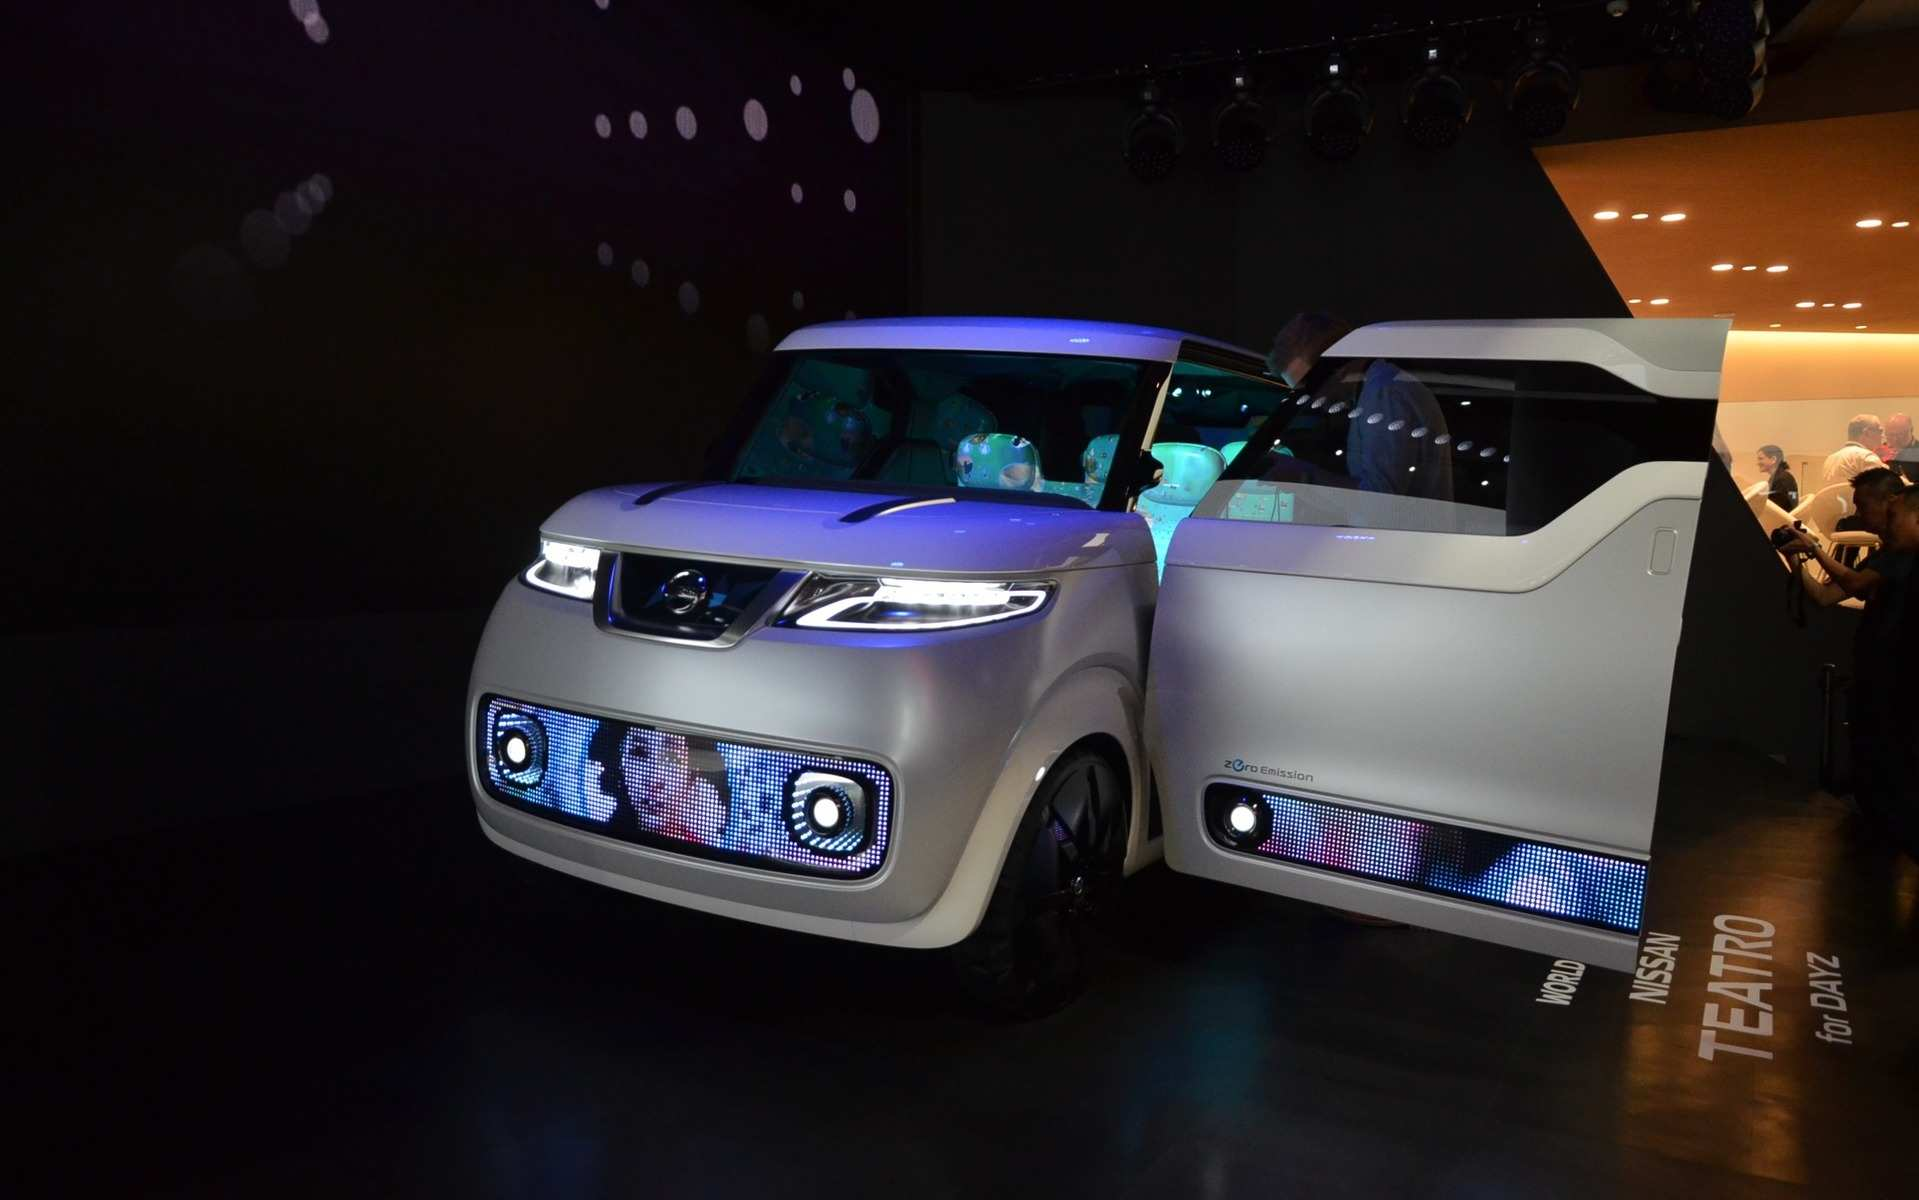 19 All New Nissan Cube 2020 Images